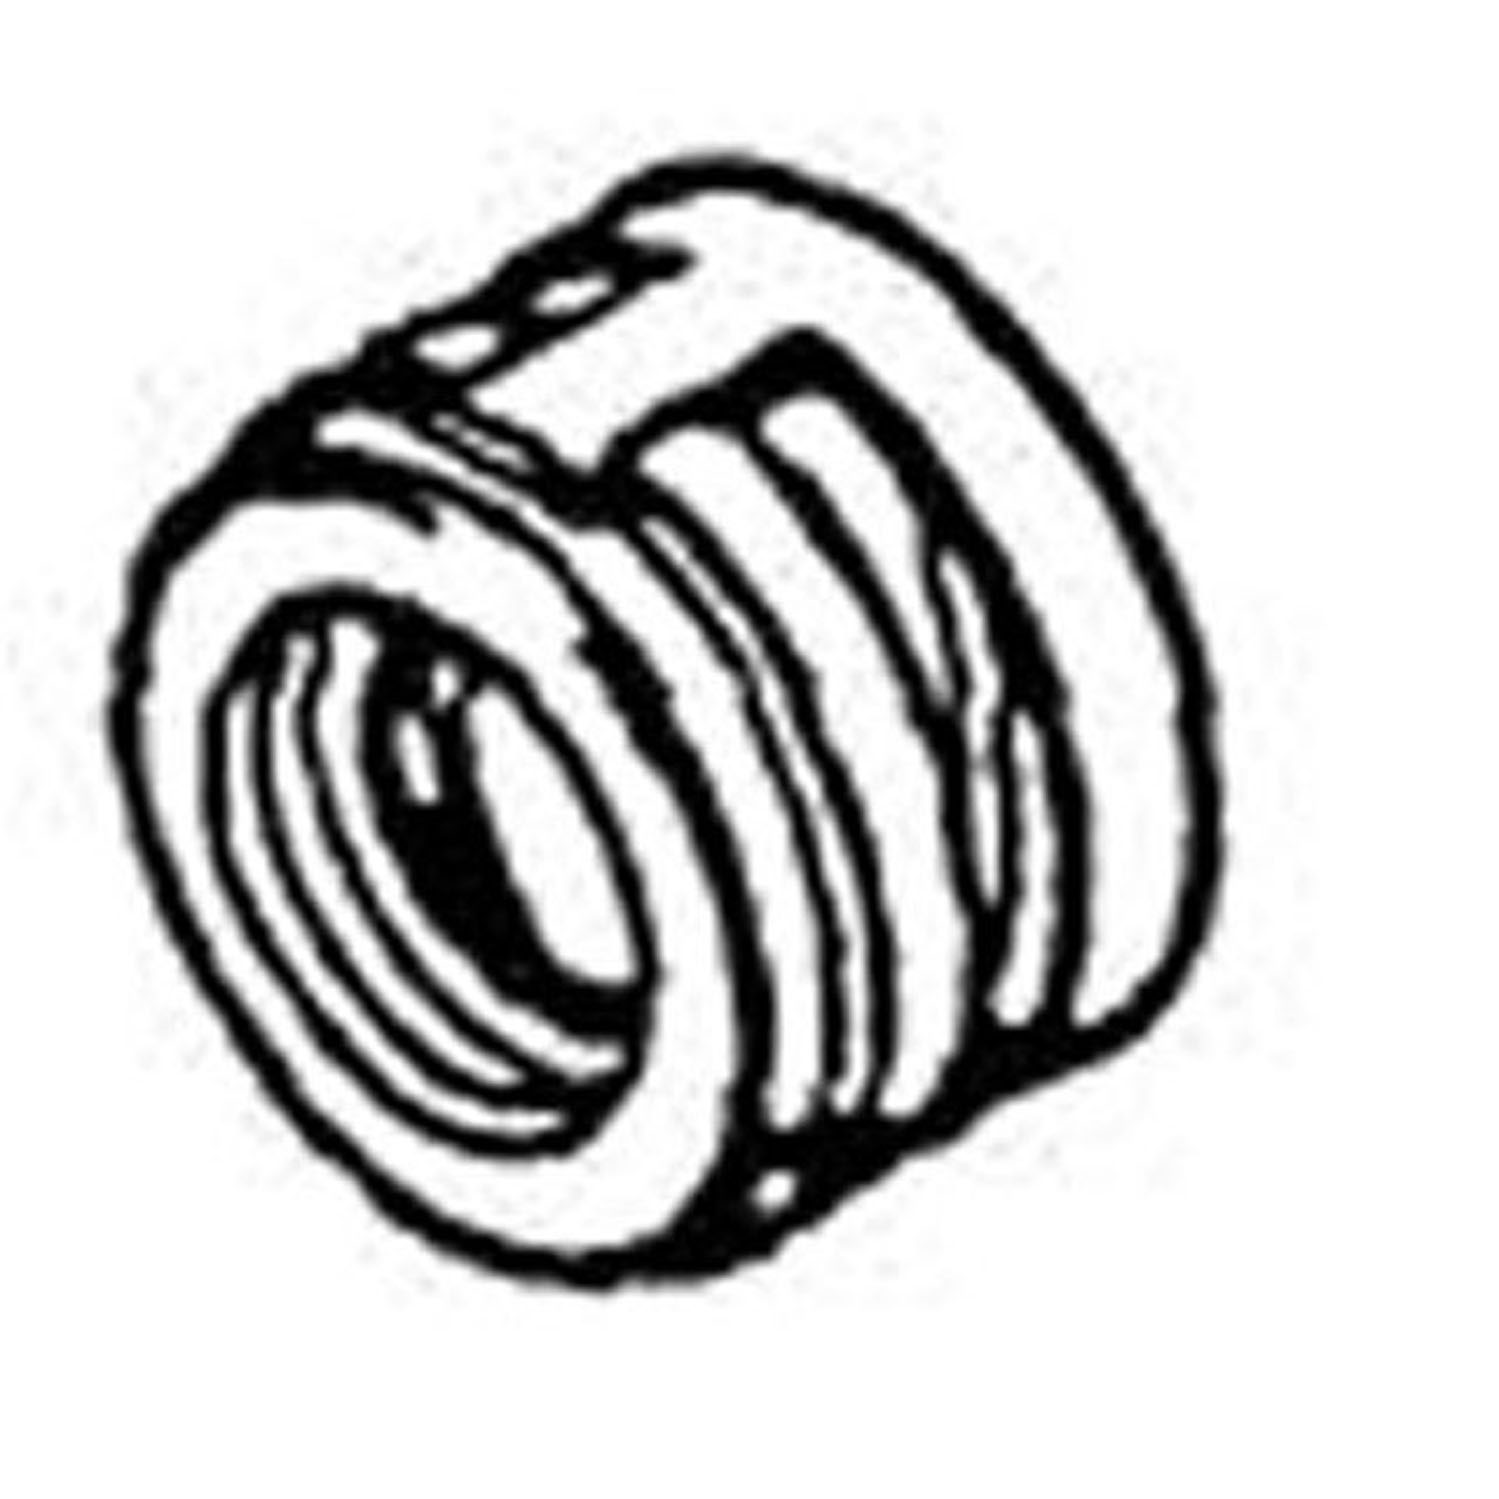 Shaft Seal FS6 C171 A590 6P134 1